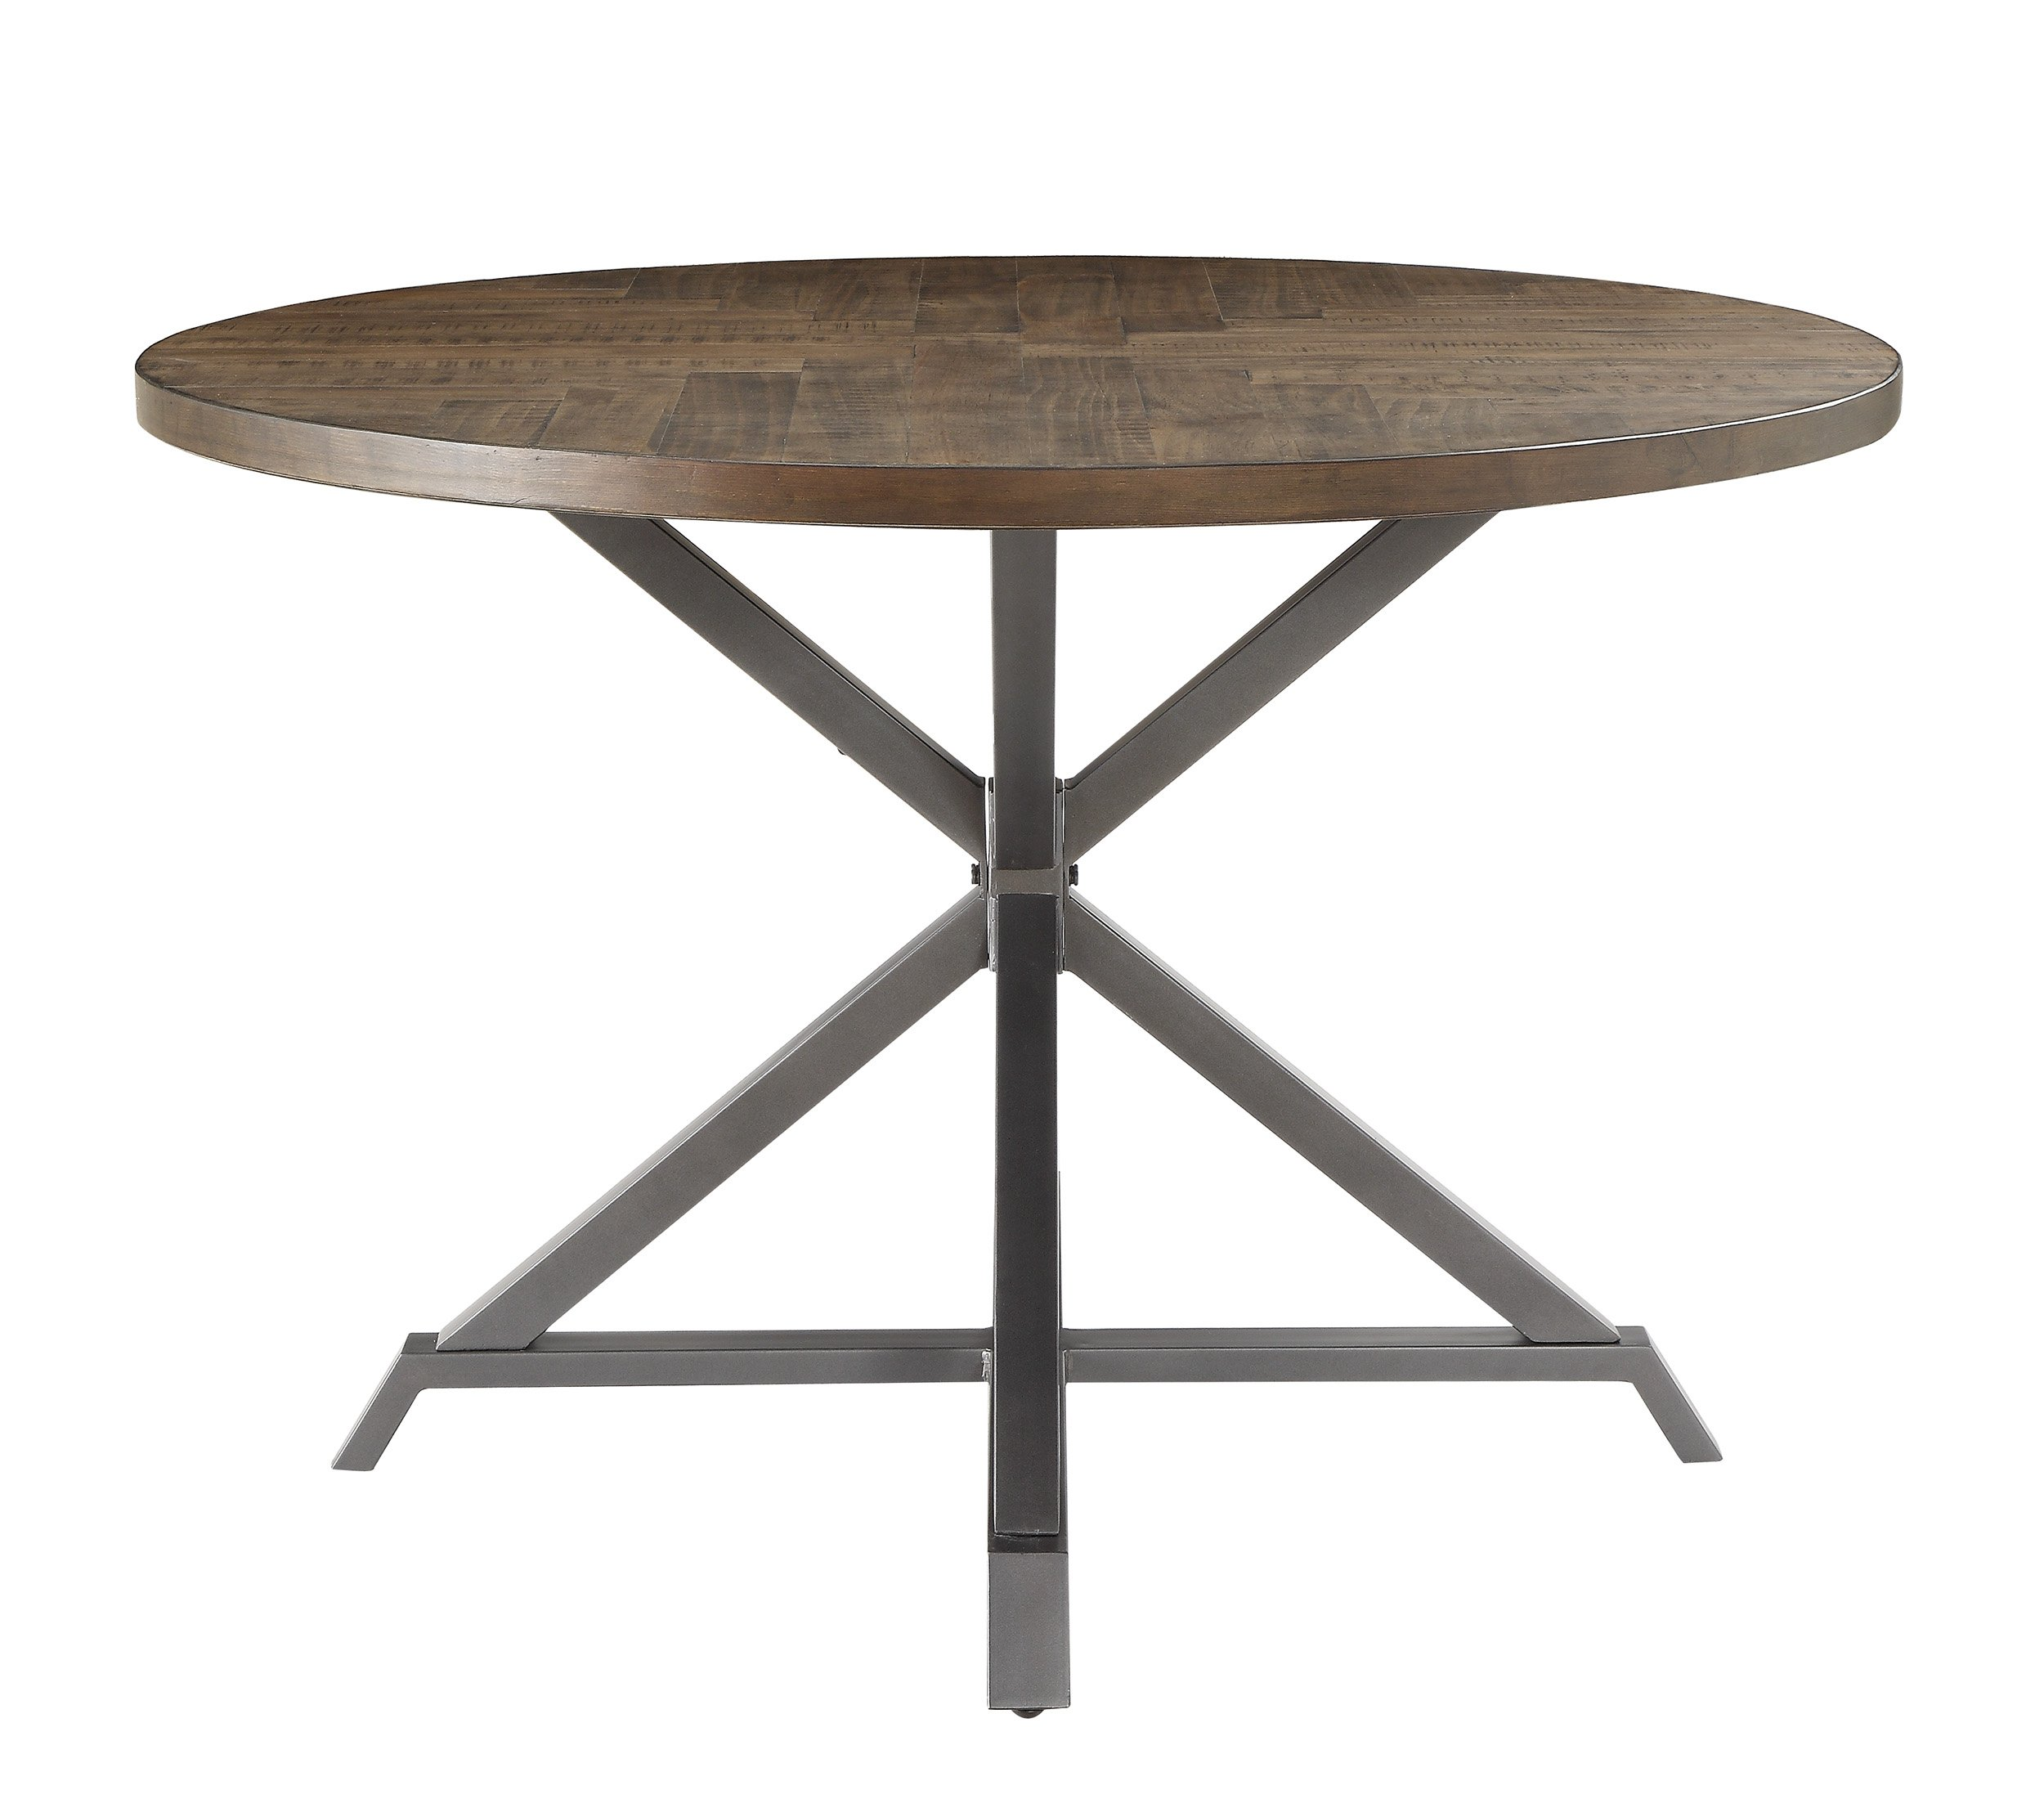 Homelegance Fideo 45'' Round Industrial Style Dining Table, Pine by Homelegance (Image #2)